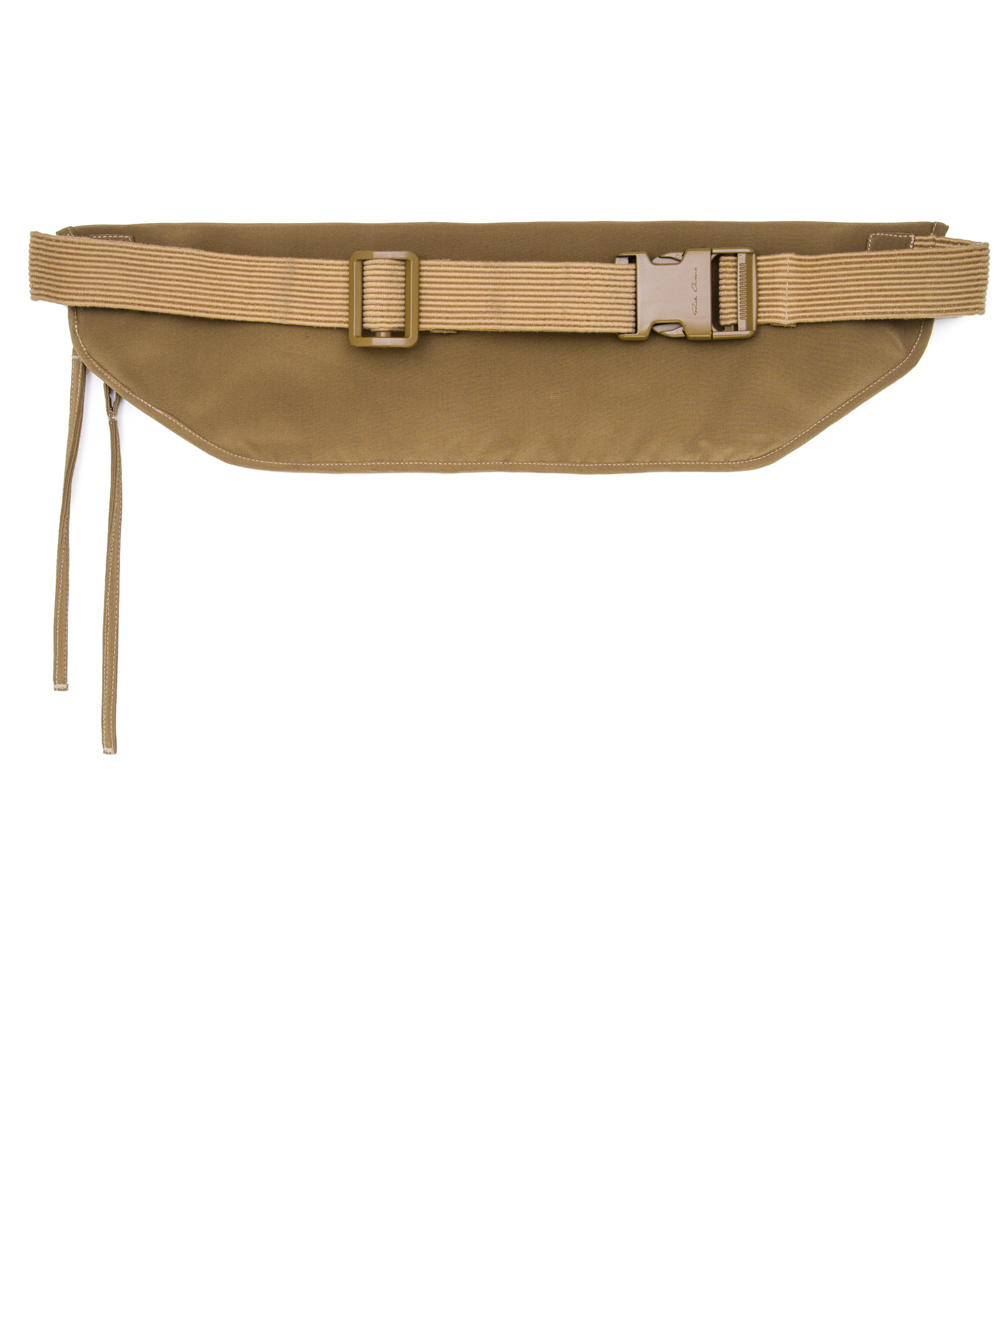 RICK OWENS SS19 BABEL MONEY BELT IN MUSTARD GREEN